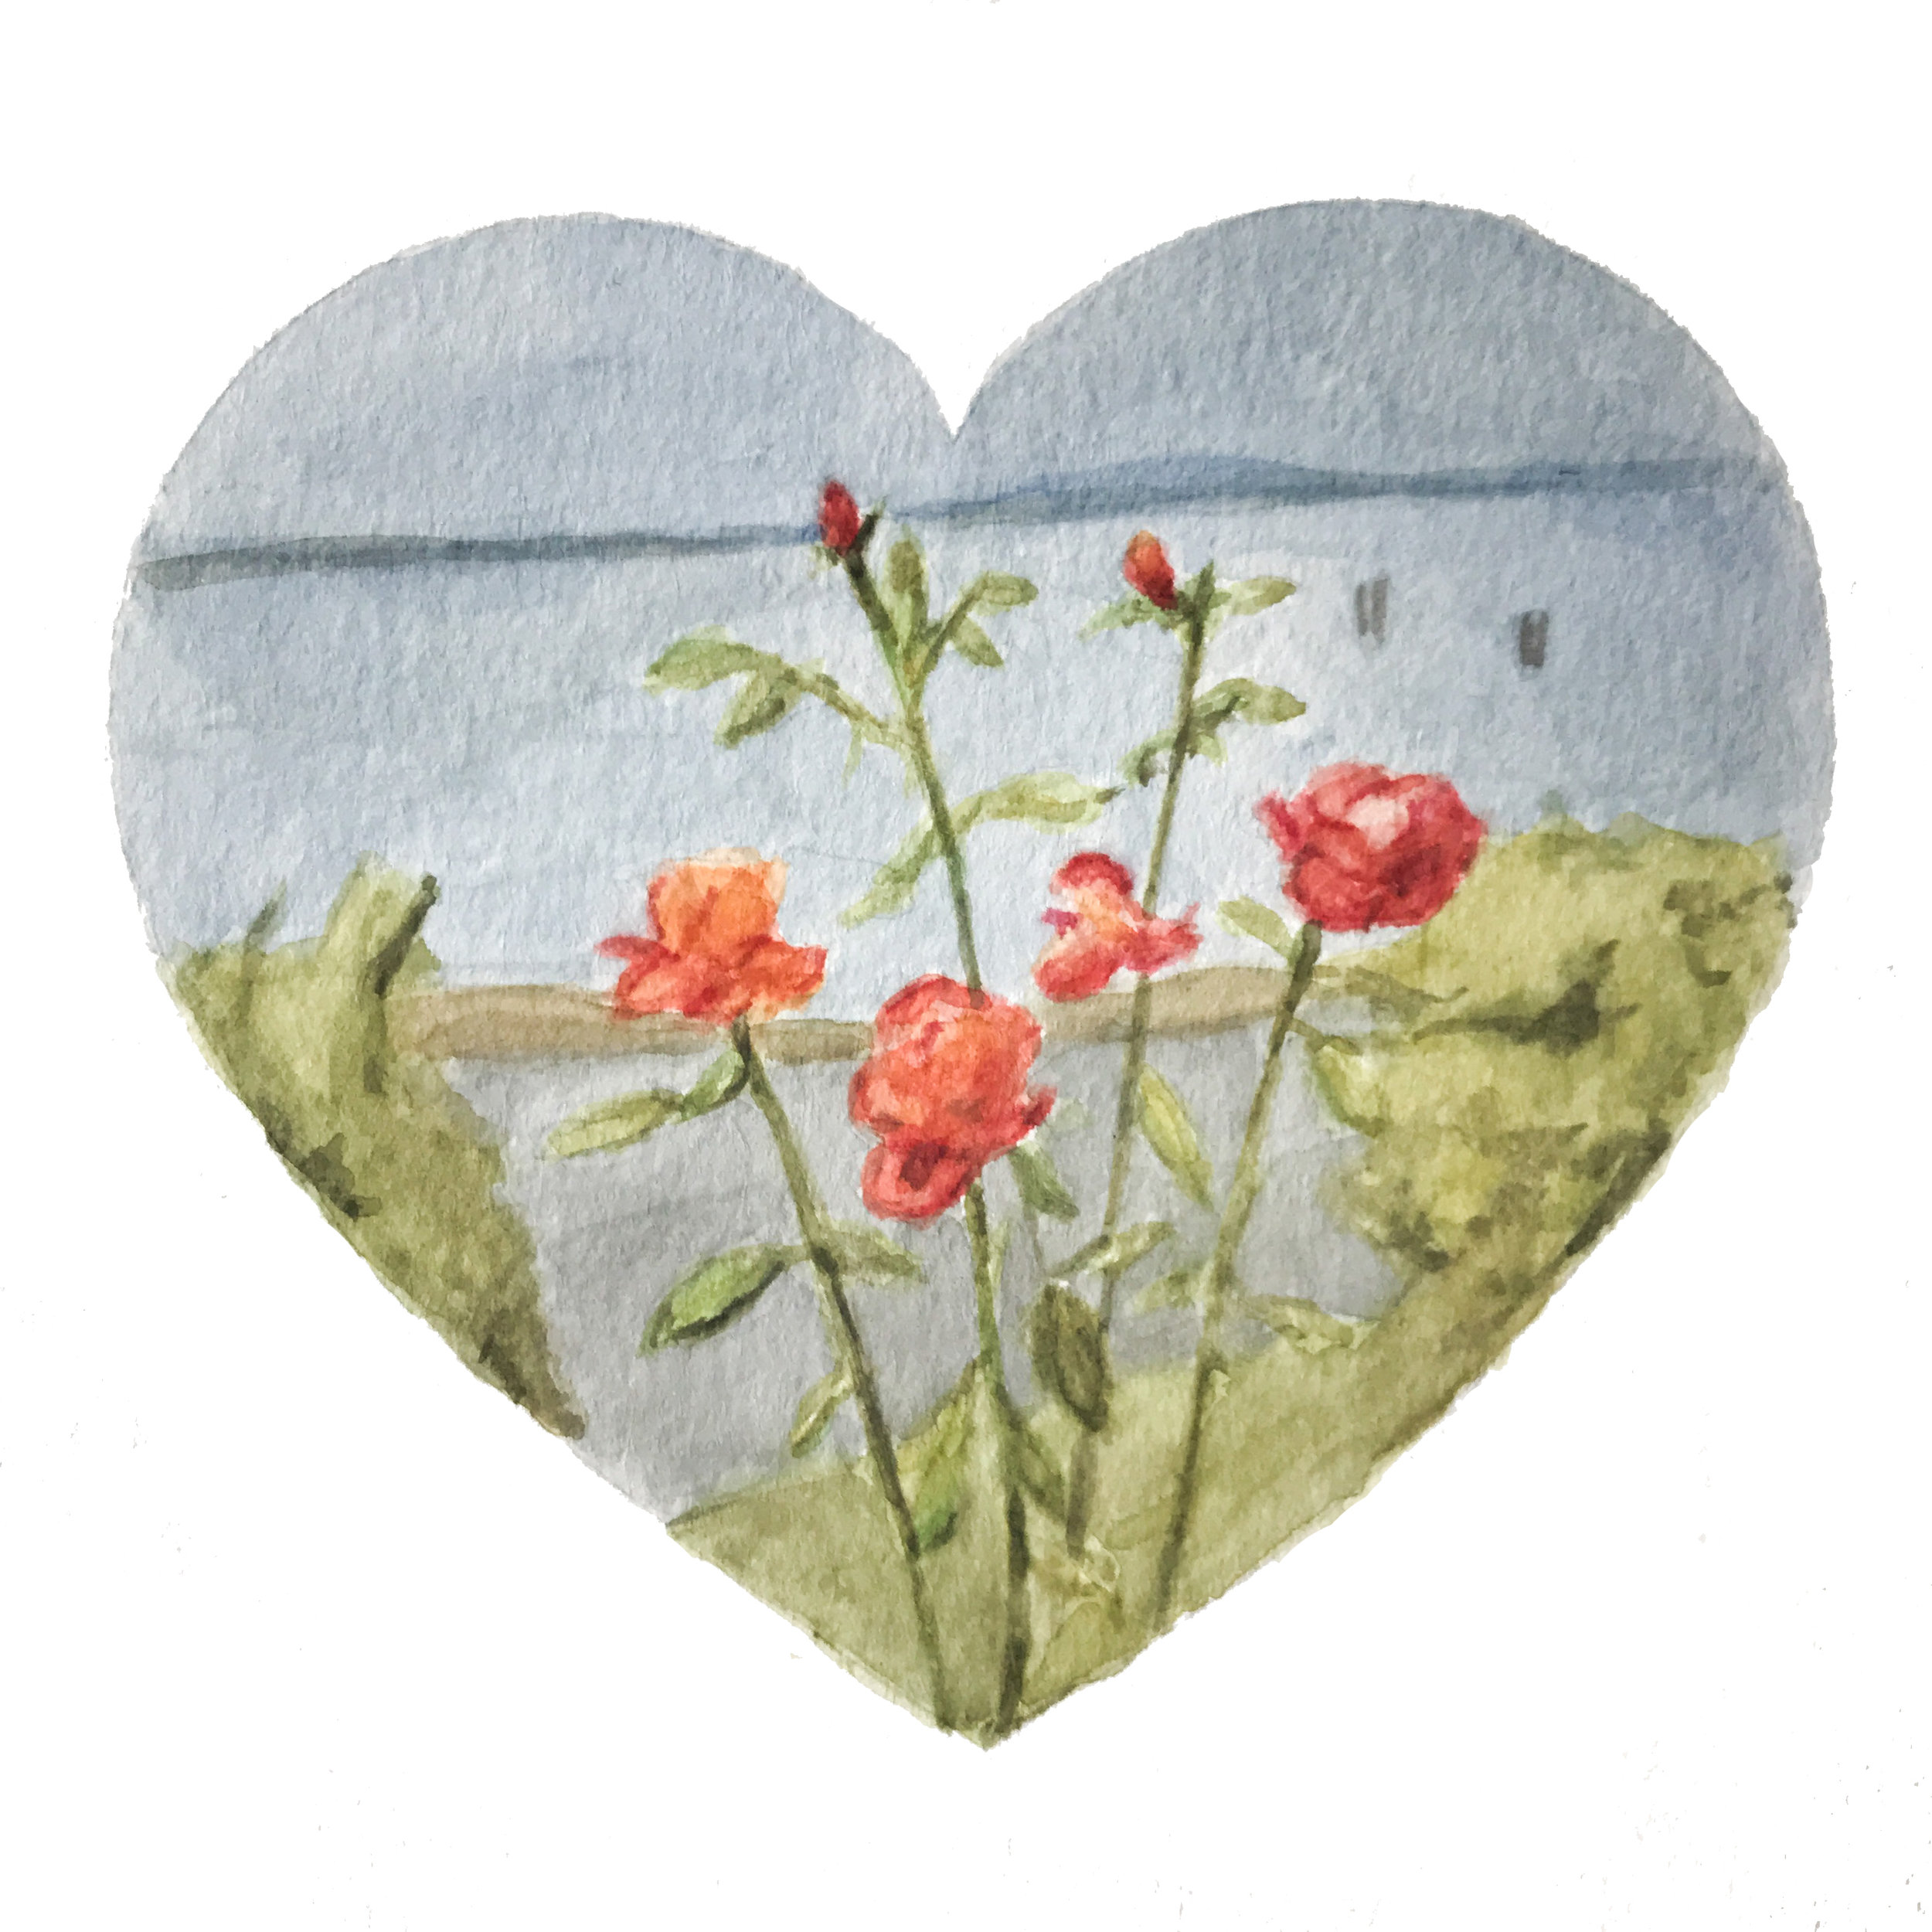 Elliott Bay Roses  Watercolor and pencil on paper, 2018